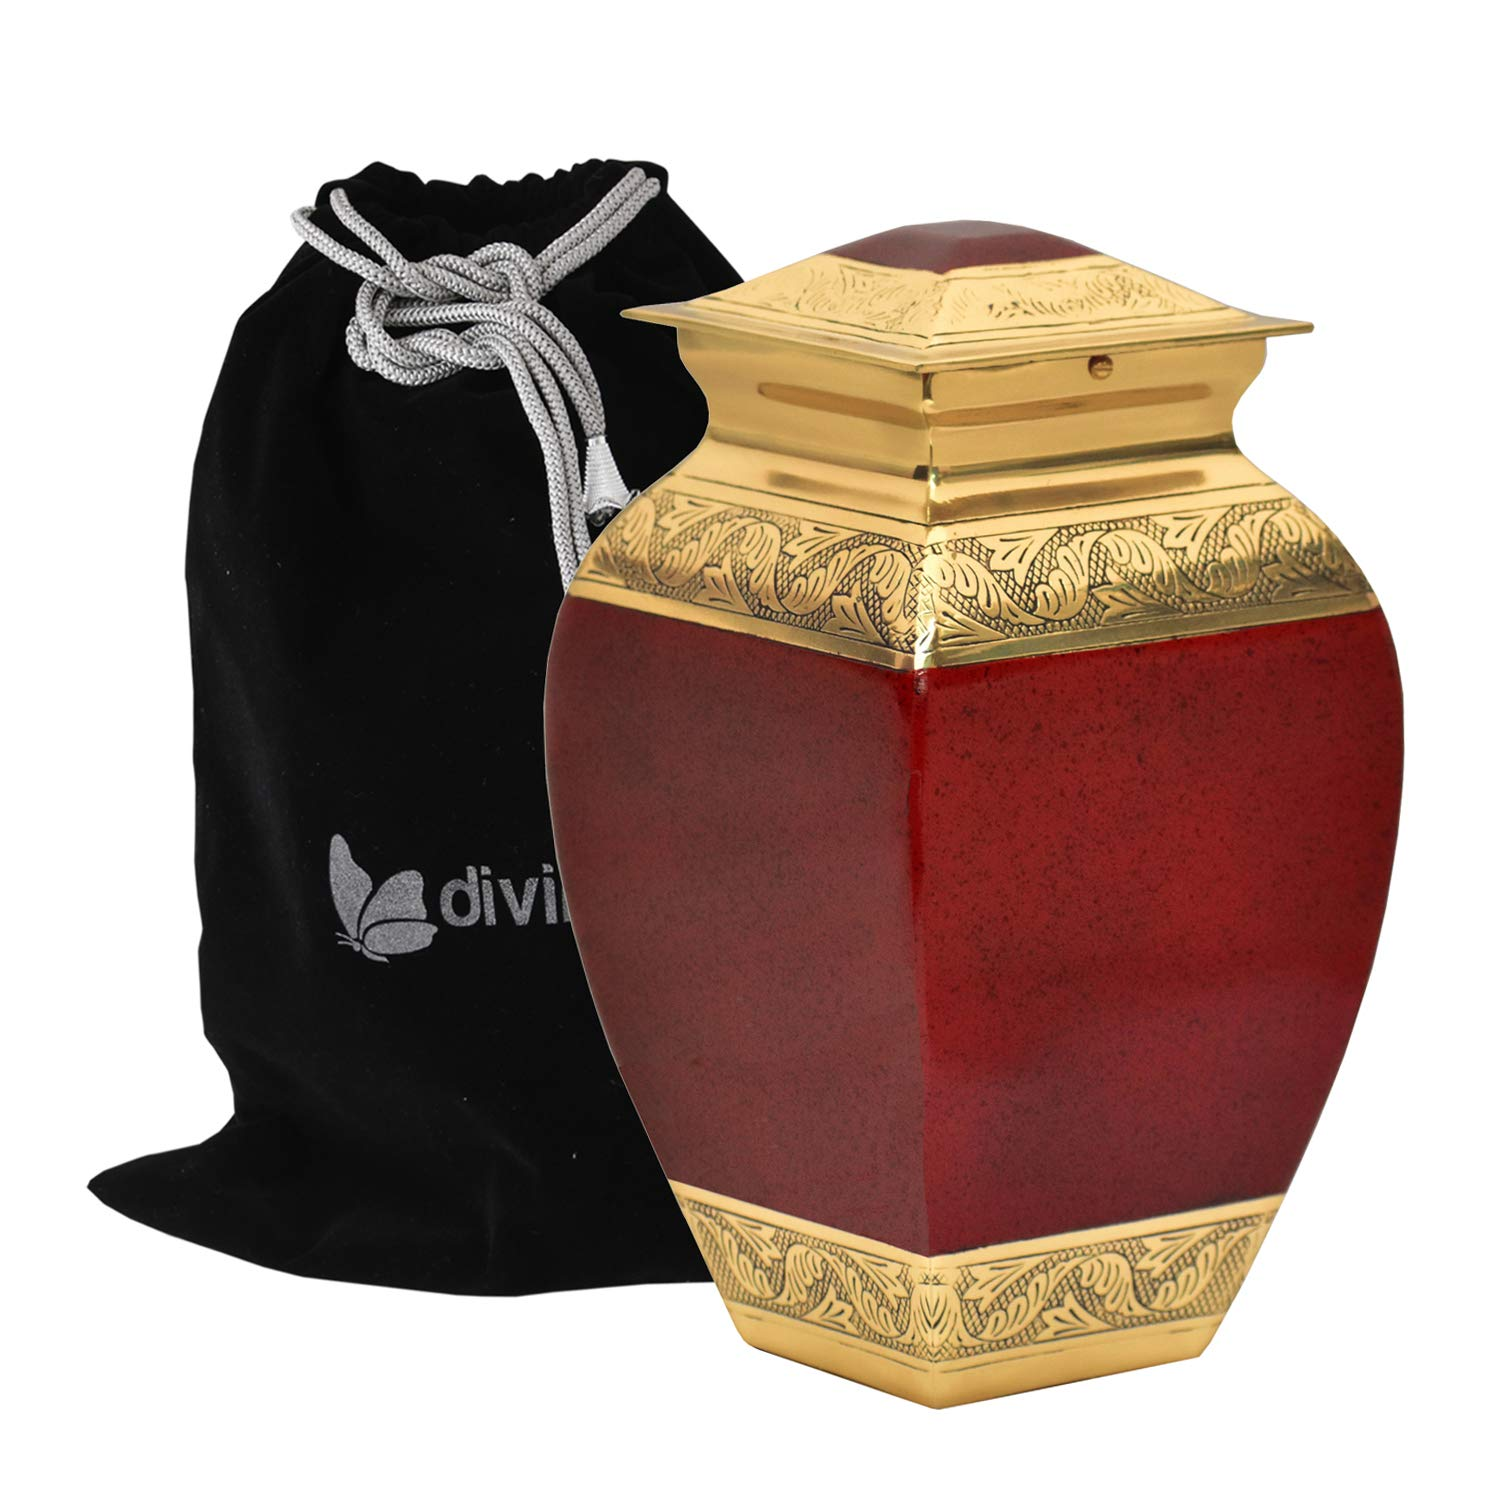 Zaffre Cremation Urn with Engraved Venus Bands - 100% Handcrafted Adult Urn - Solid Metal Large Urn for Human Ashes - Funeral Urn with Free Bag (Red)